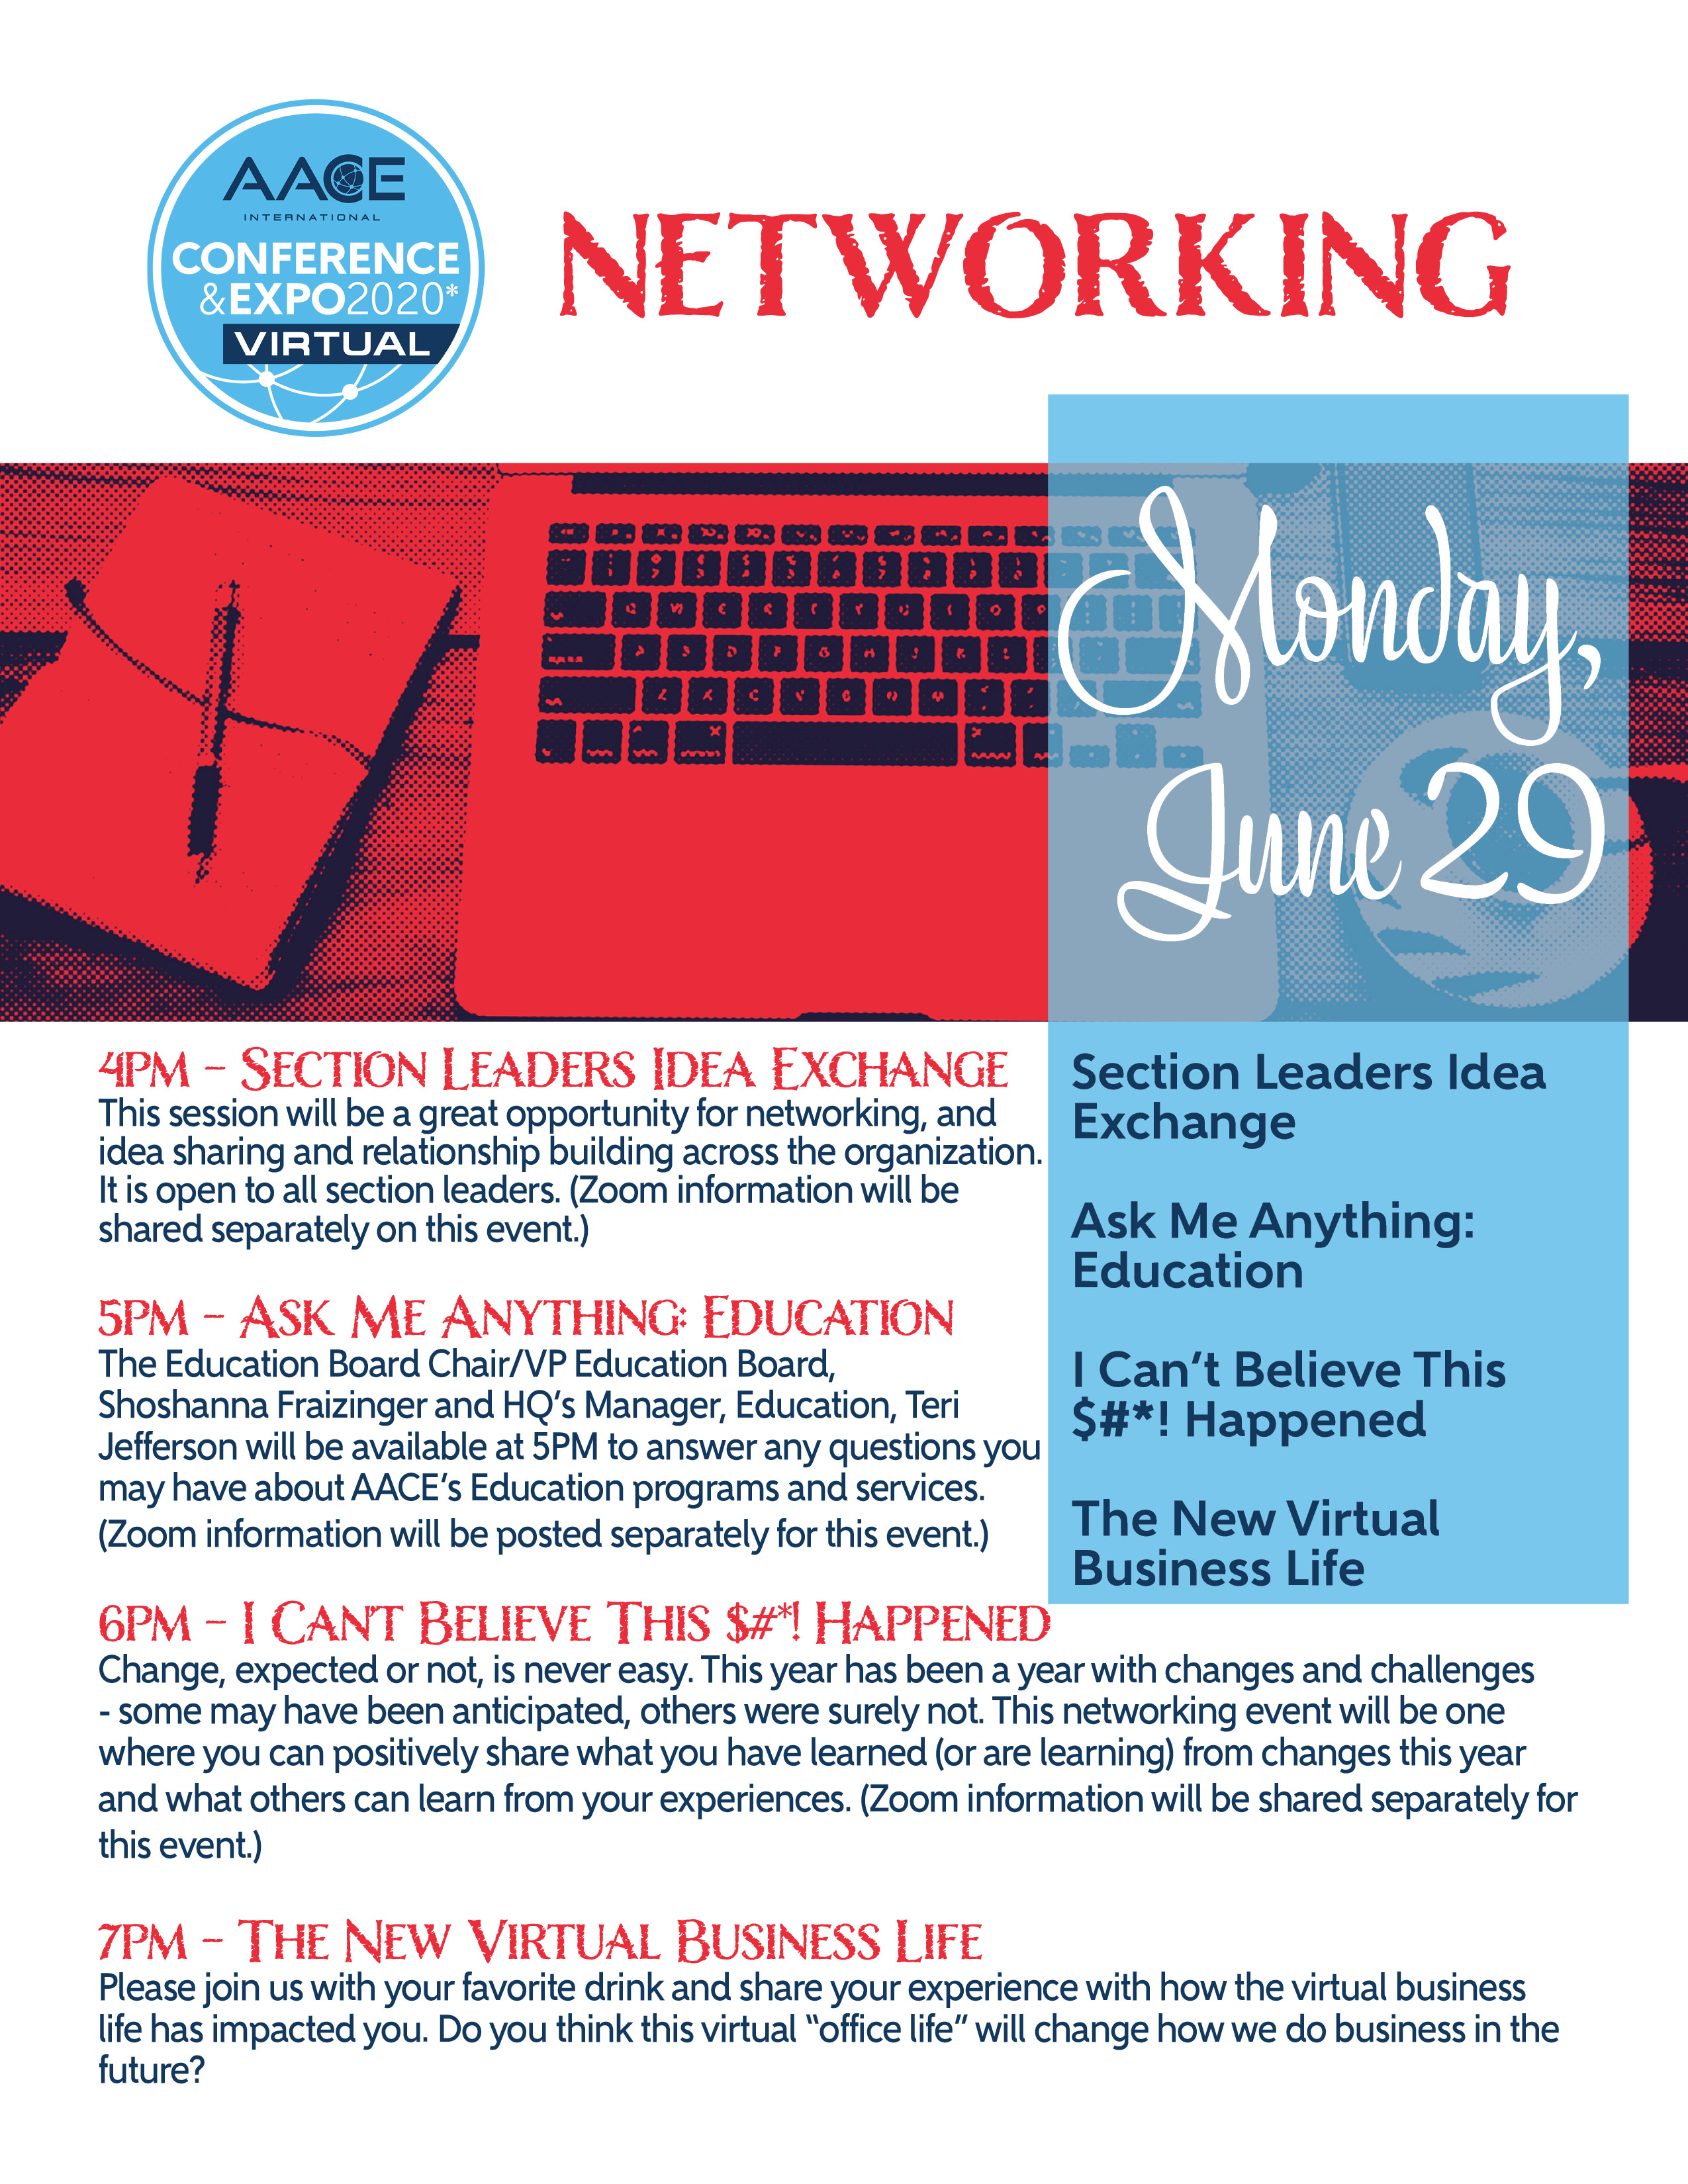 06292020_Networking